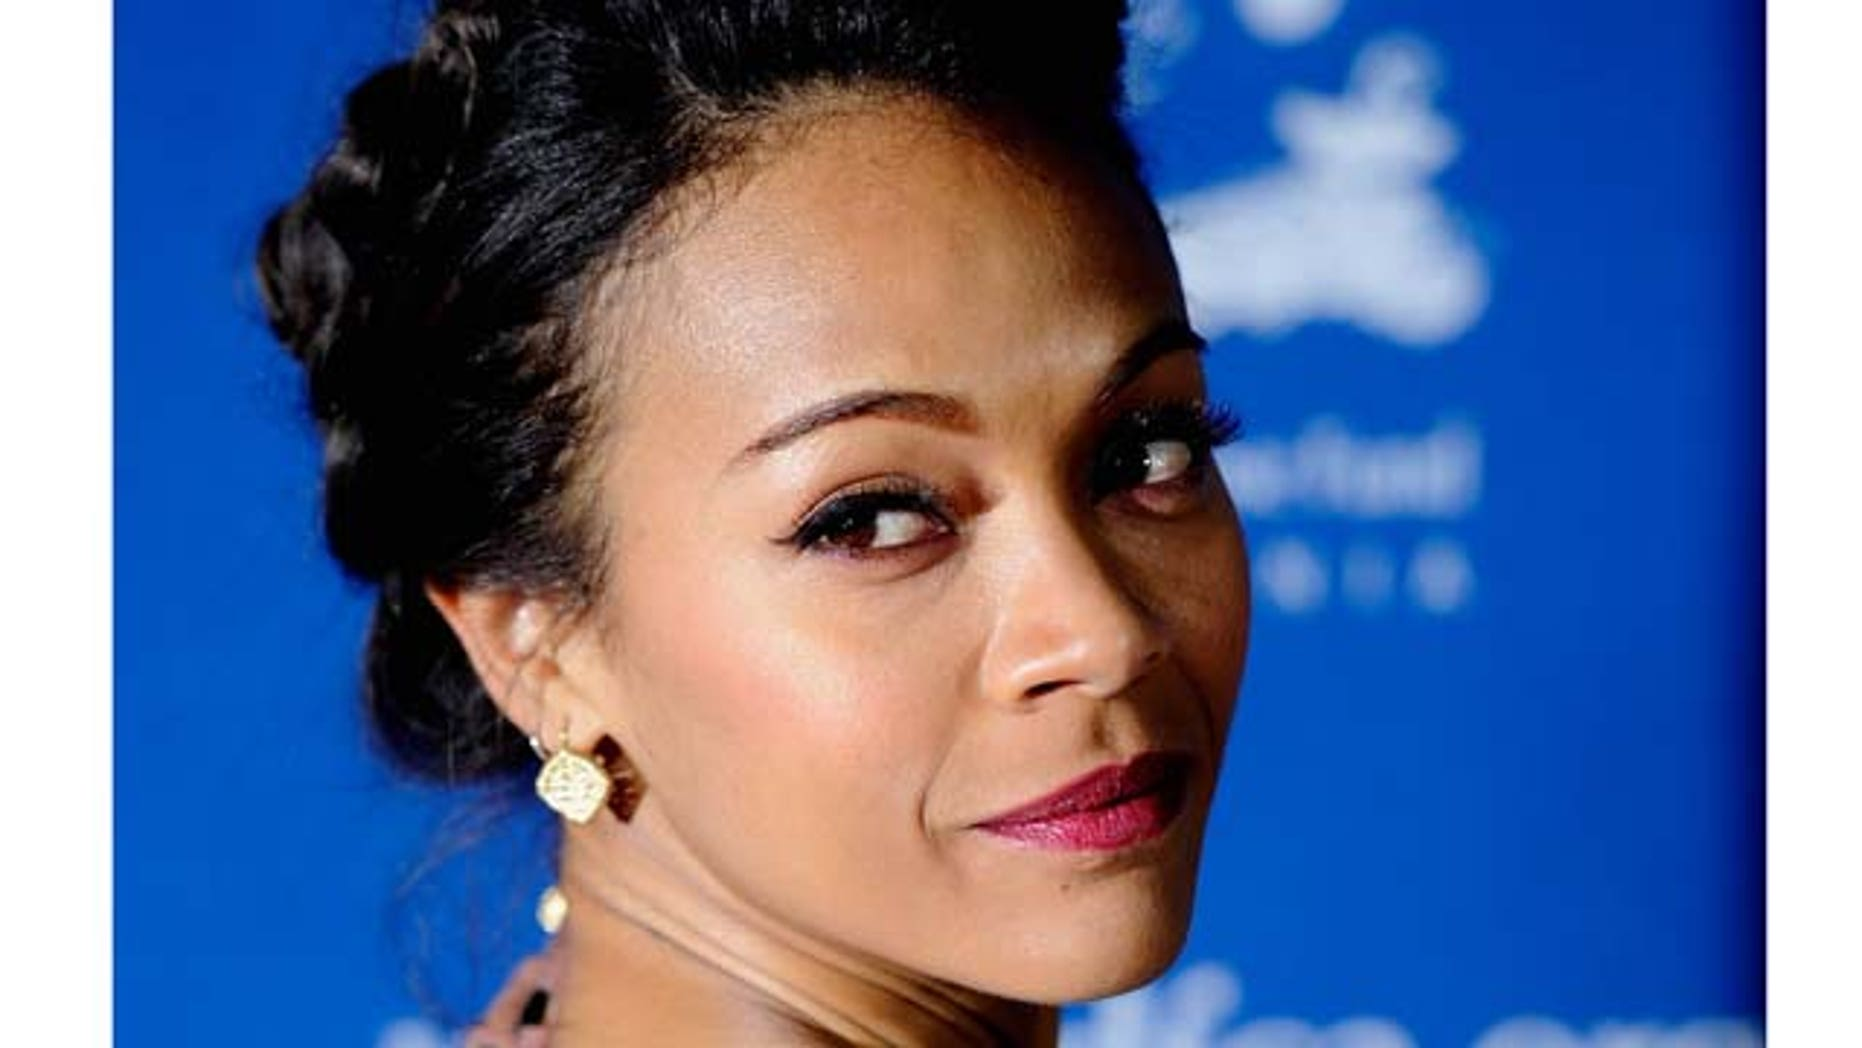 BEVERLY HILLS, CA - DECEMBER 01:  Actress Zoe Saldana arrives at The Children's Defense Fund's 21st Annual Beat The Odds Awards at Beverly Hills Hotel on December 1, 2011 in Beverly Hills, California.  (Photo by Frazer Harrison/Getty Images)